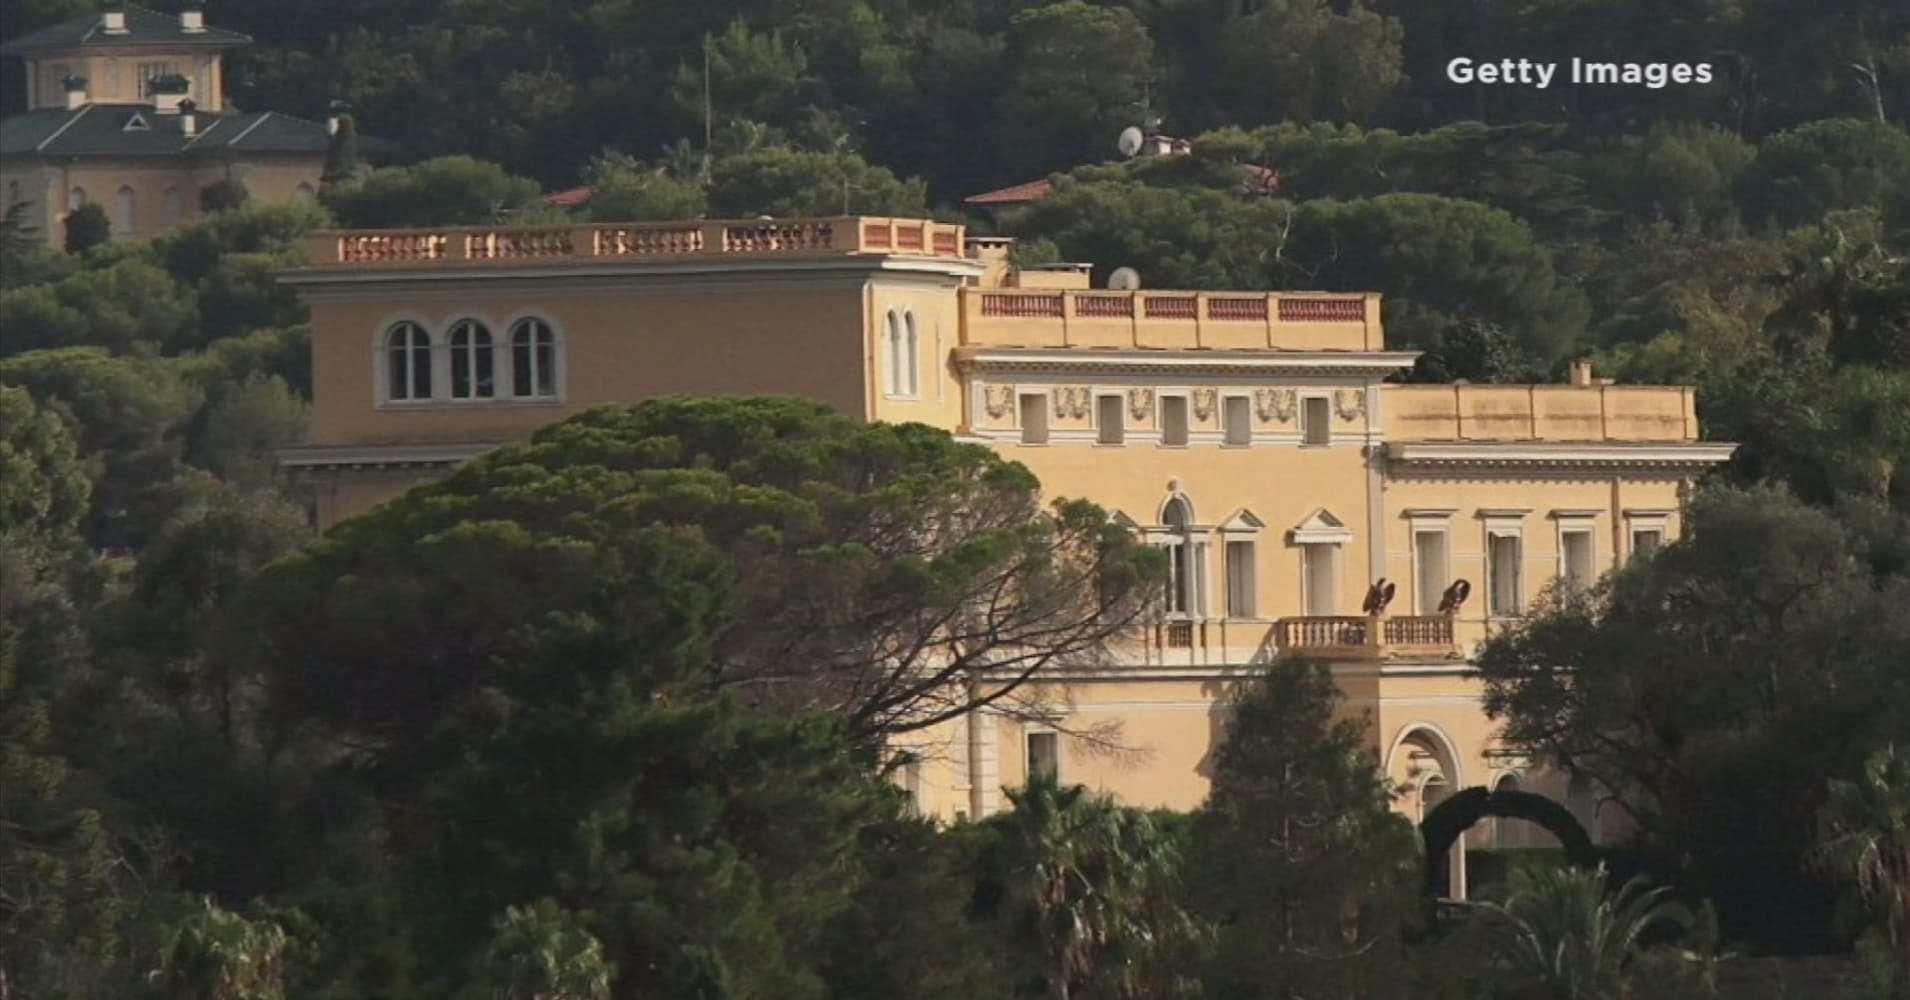 With a $1 billion price tag, is this the world's most expensive house?